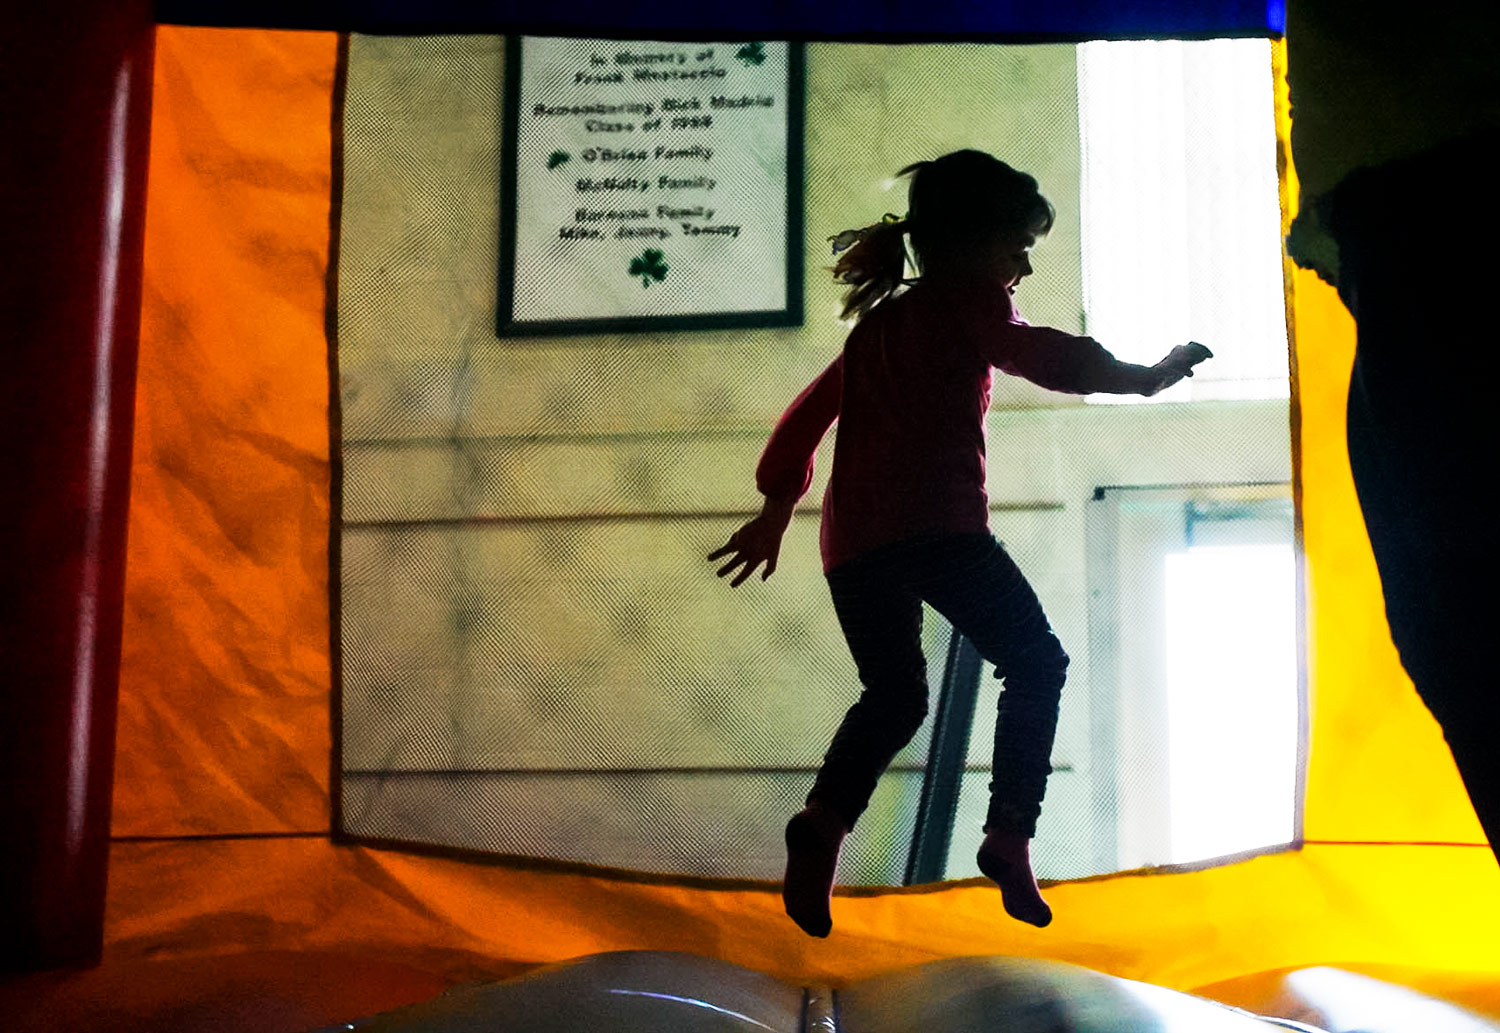 bounce-house-community-event-photographer-festival-ruthie-hauge-photography-madison-wi.jpg